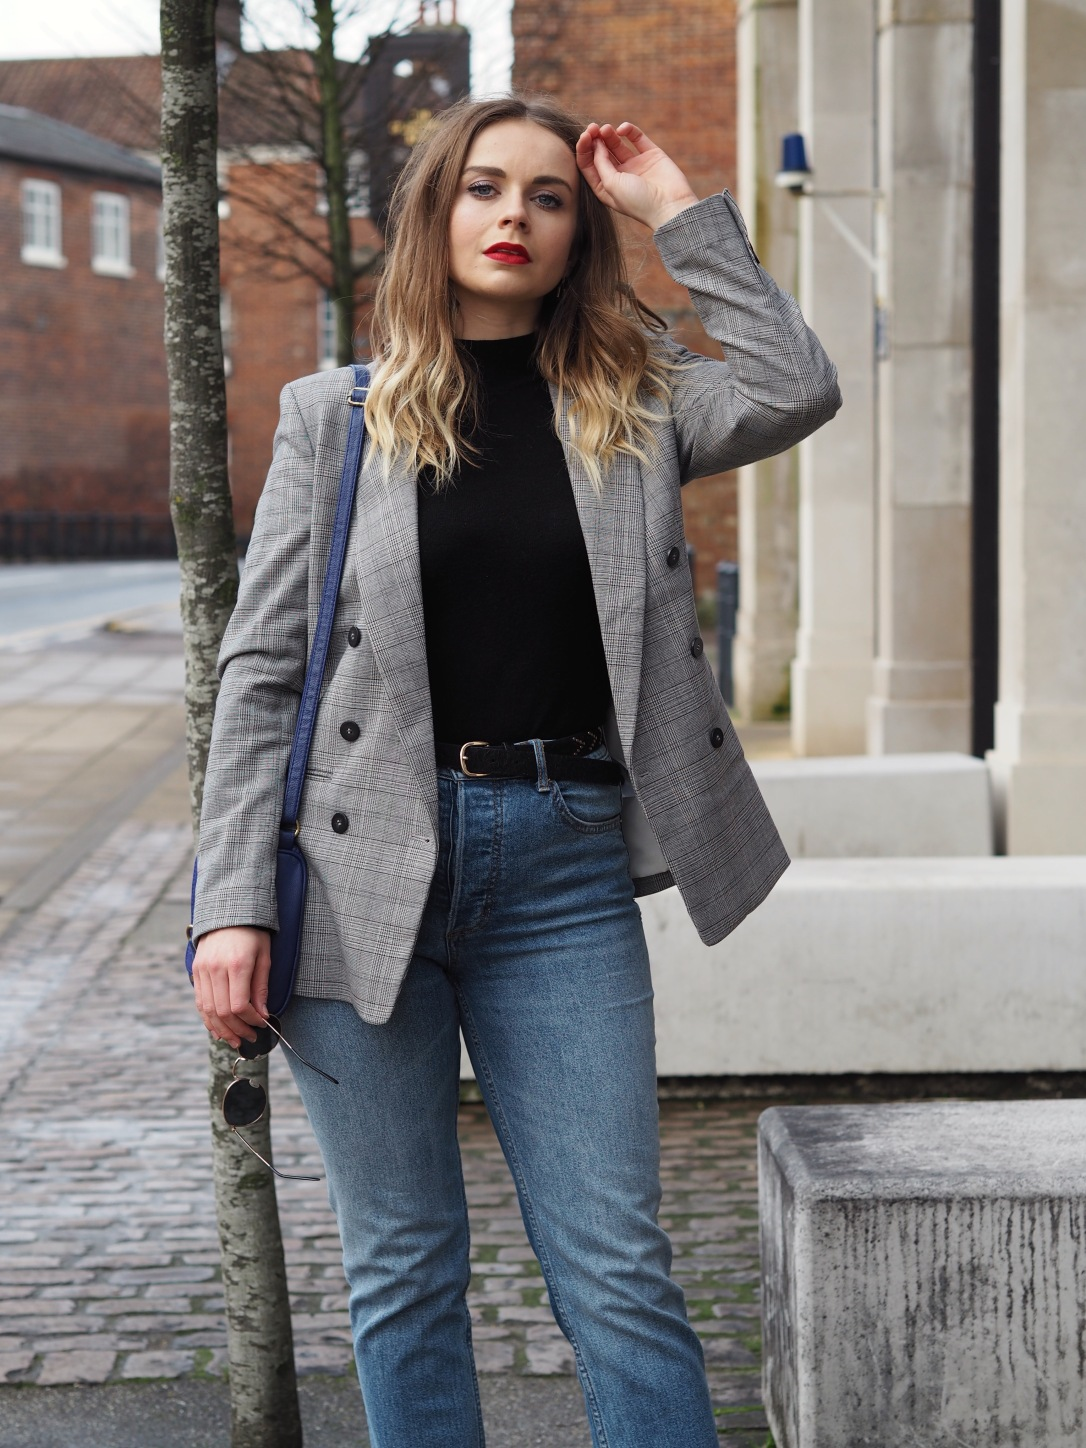 How to style a checked blazer for work